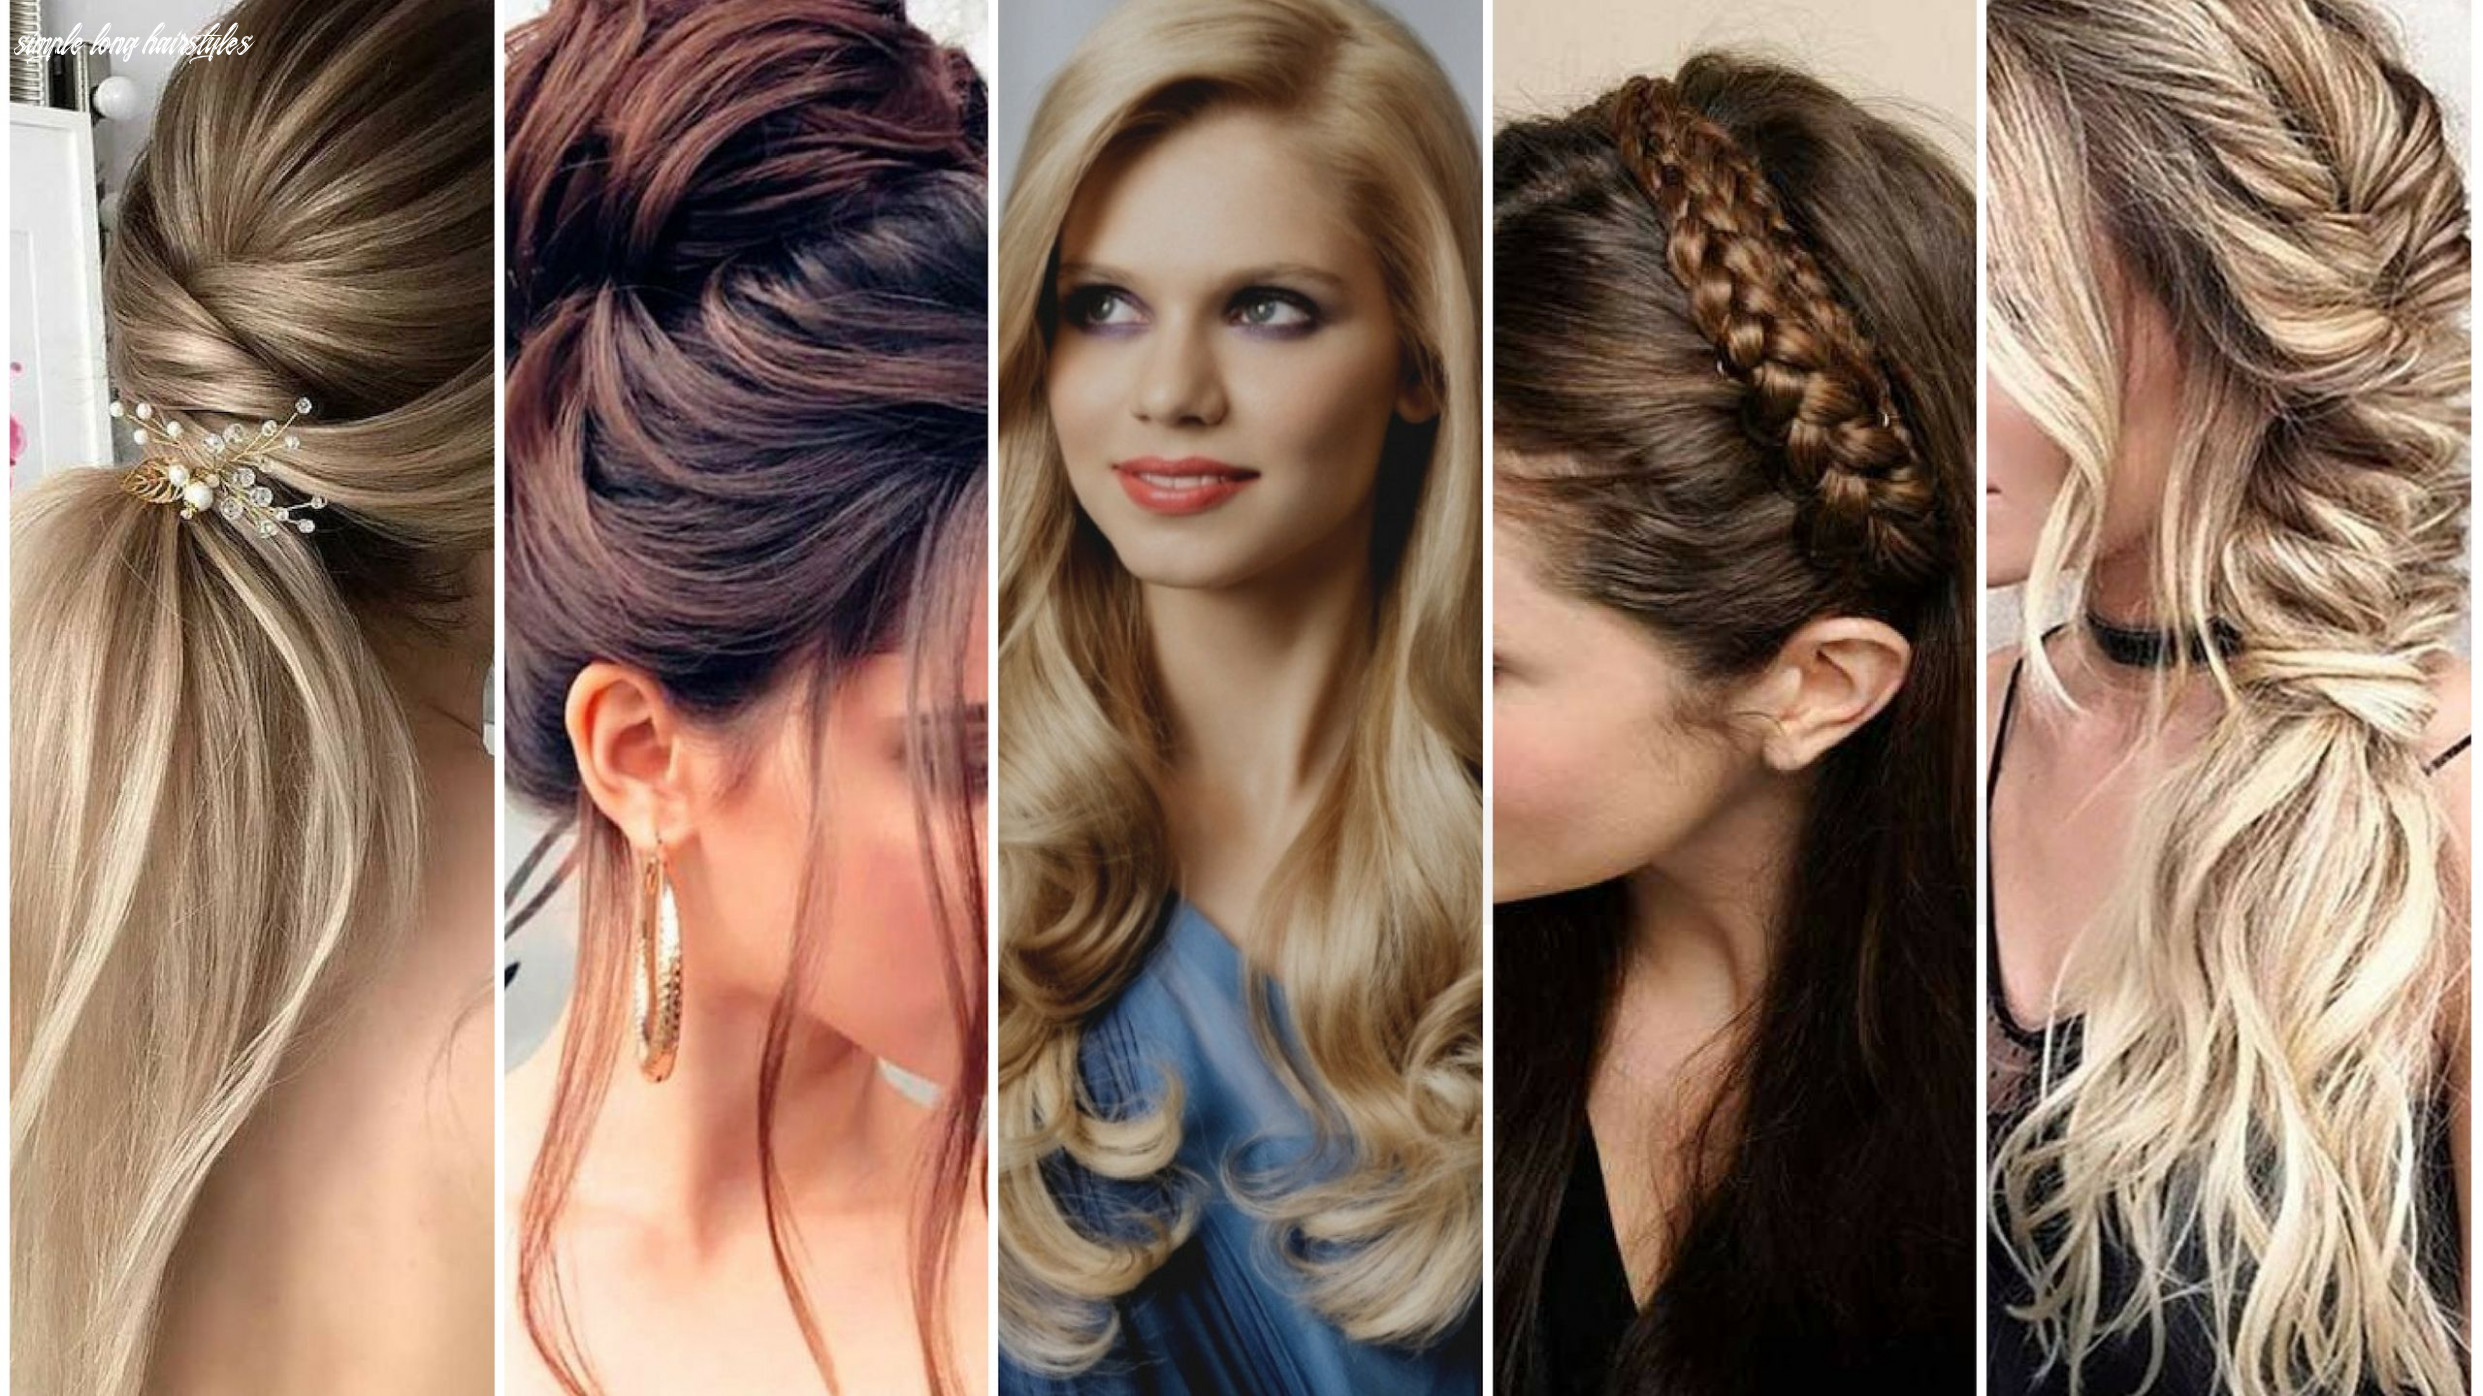 11 simple long hairstyles for party look ideas simple long hairstyles